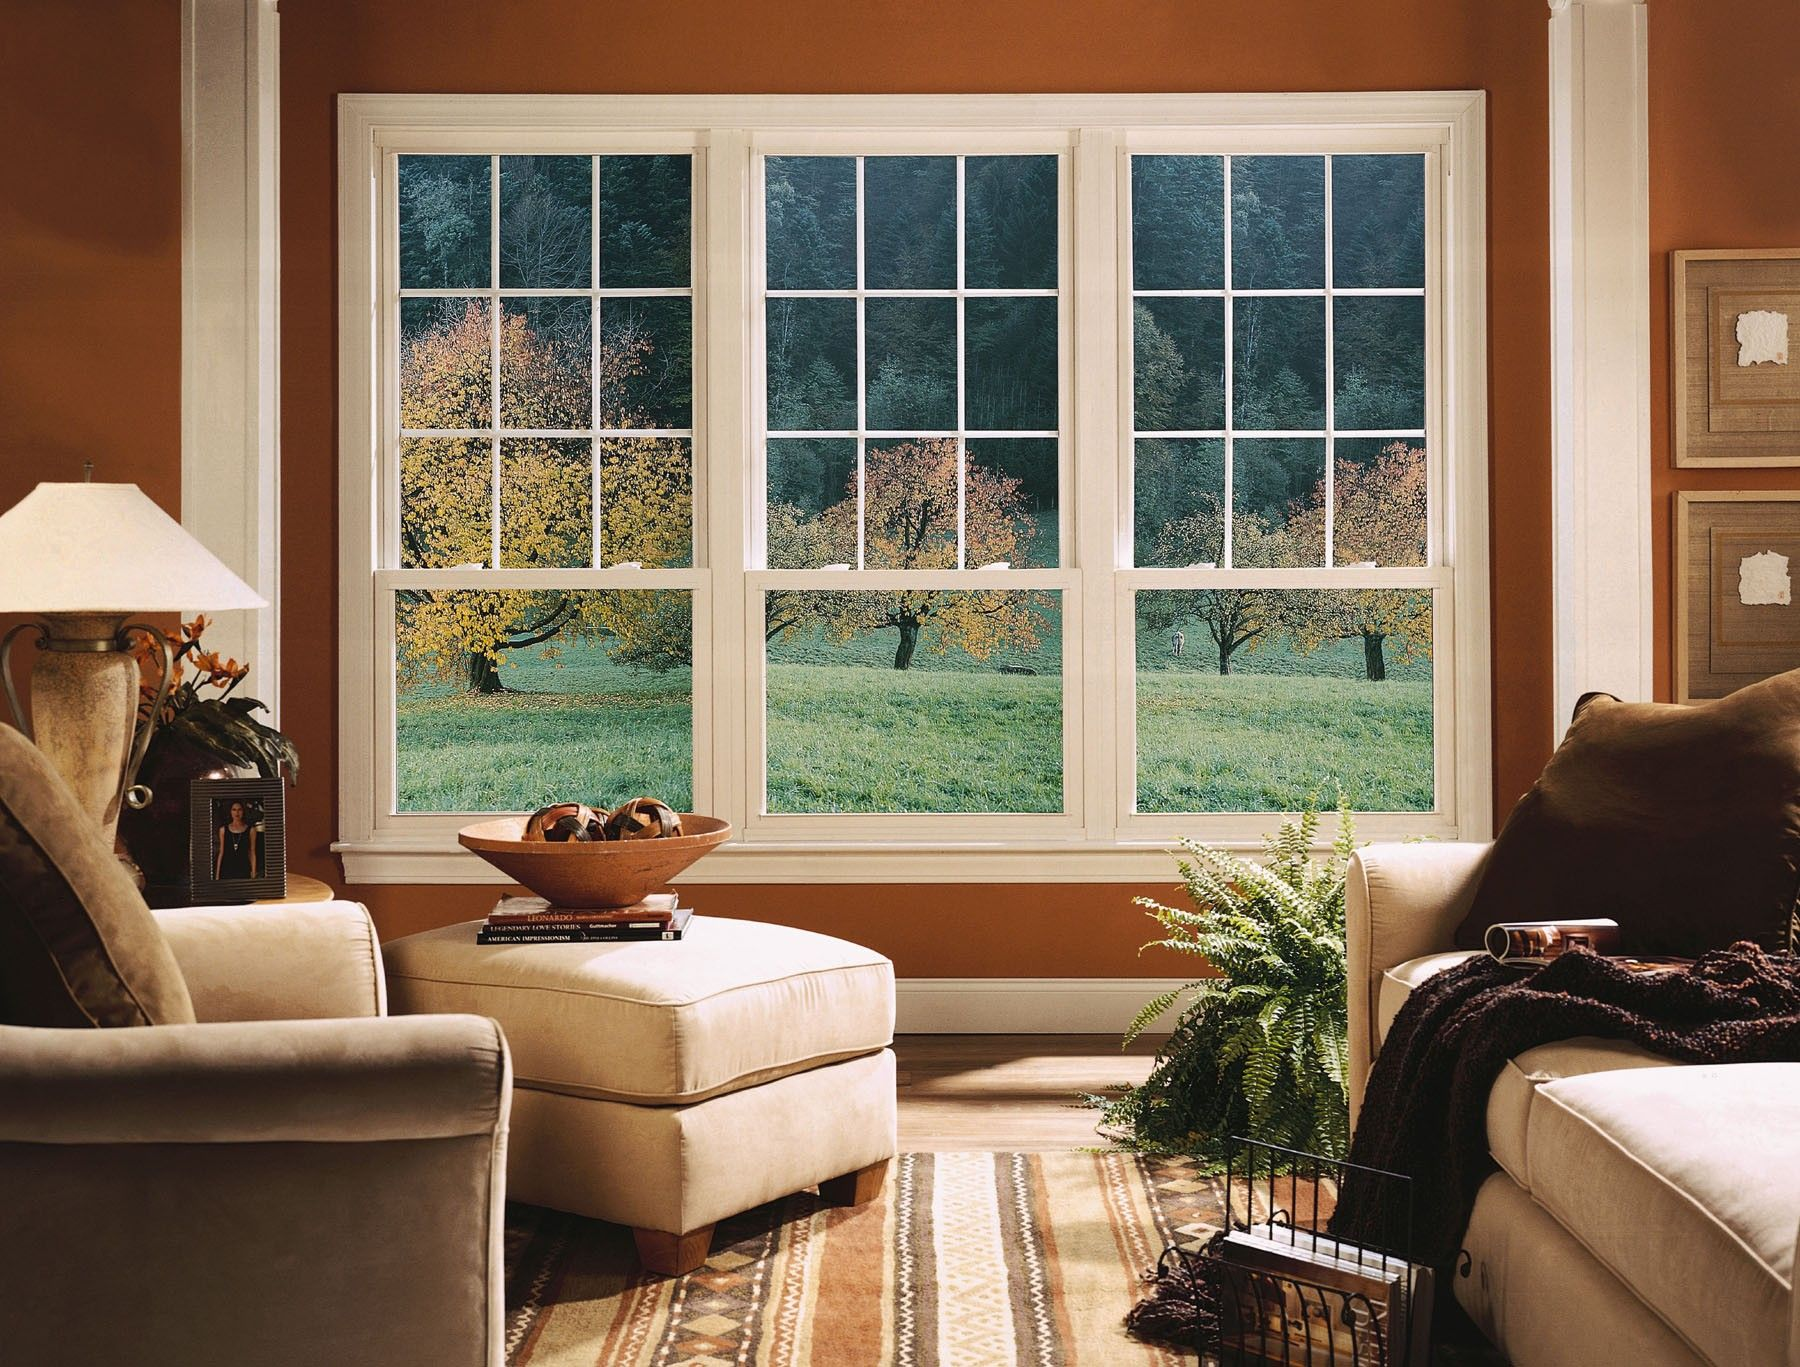 House windows pictures - Create A Beautiful View With The Right Windows In Your Home